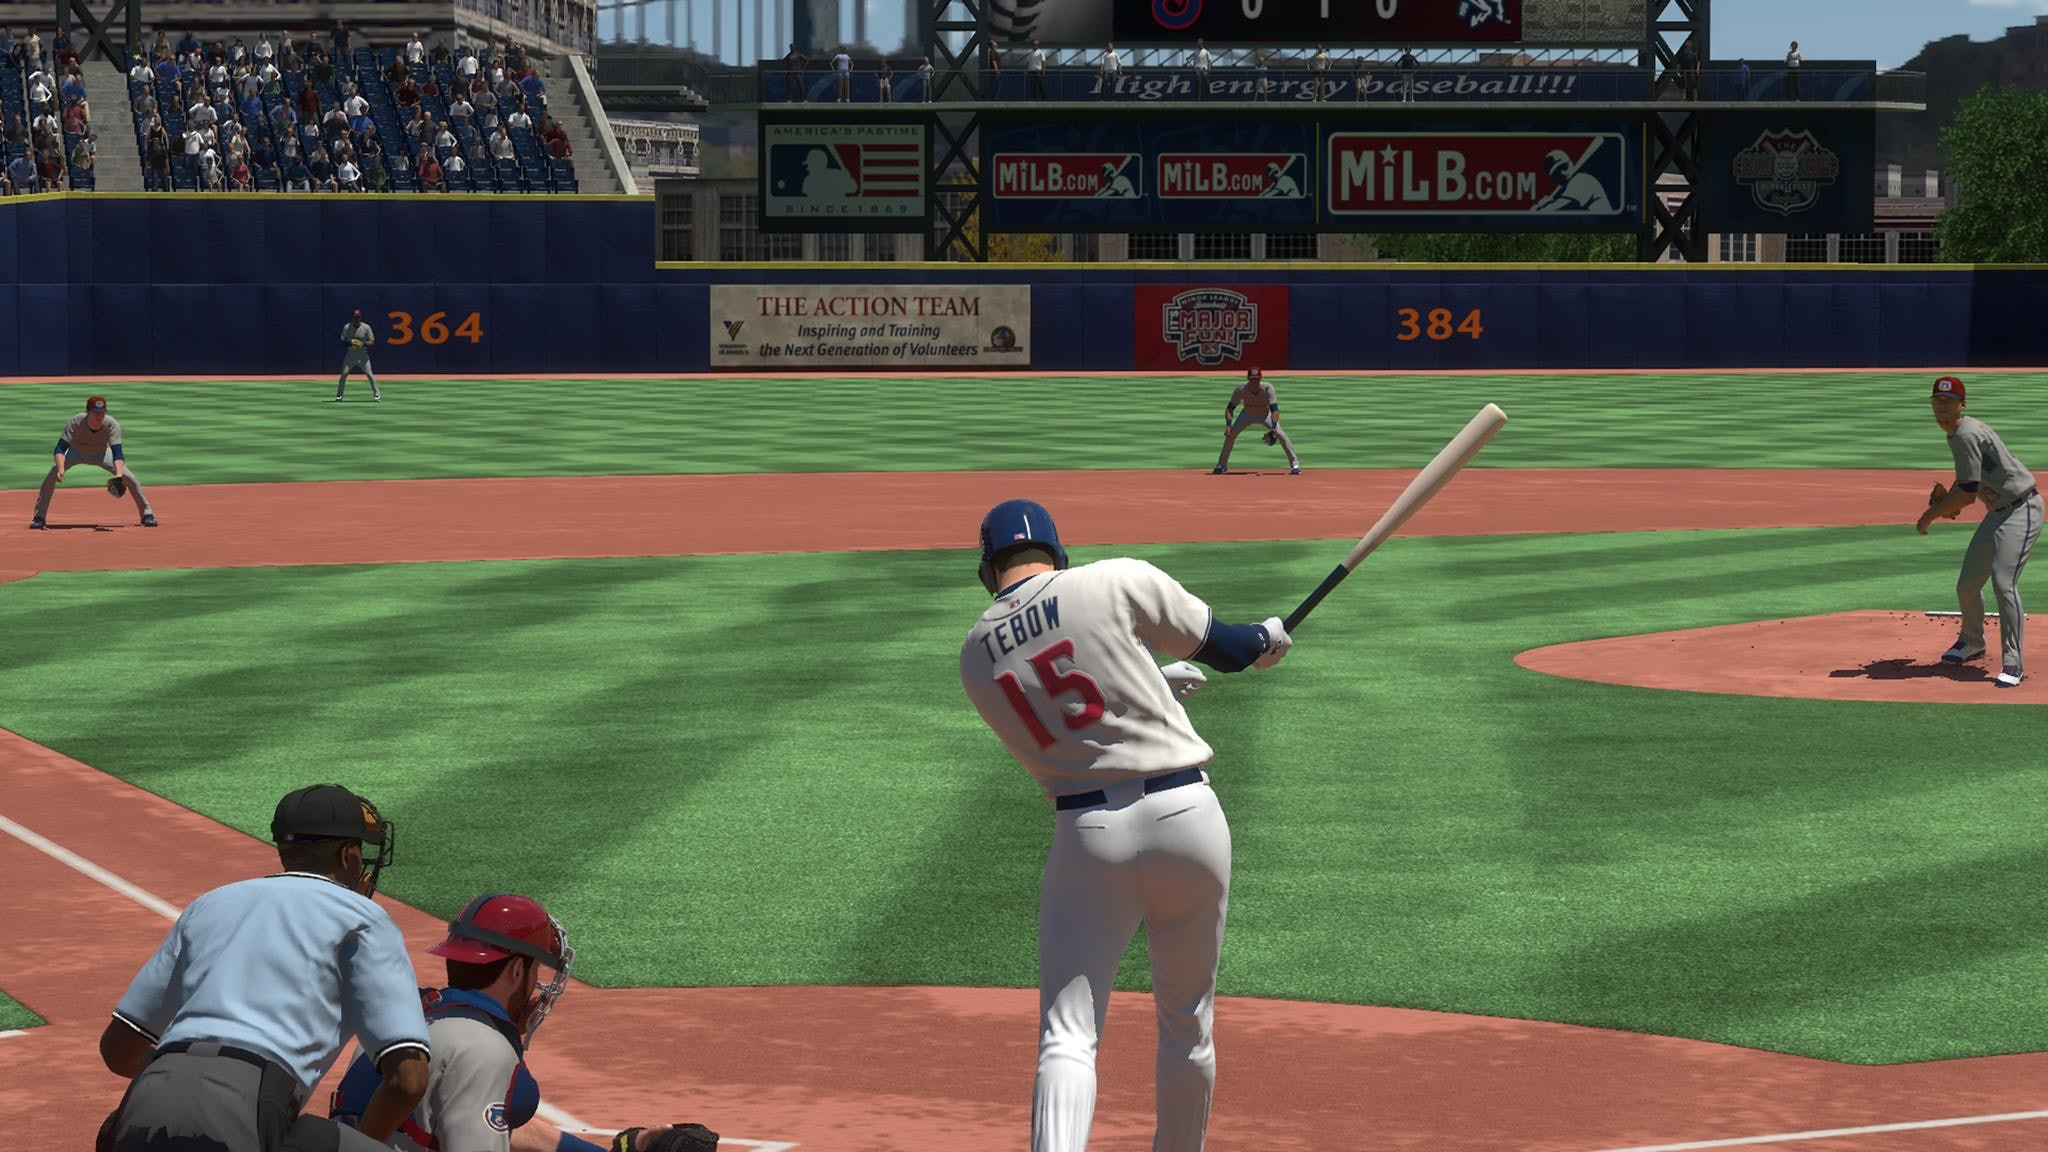 Mlb the show download latest roster